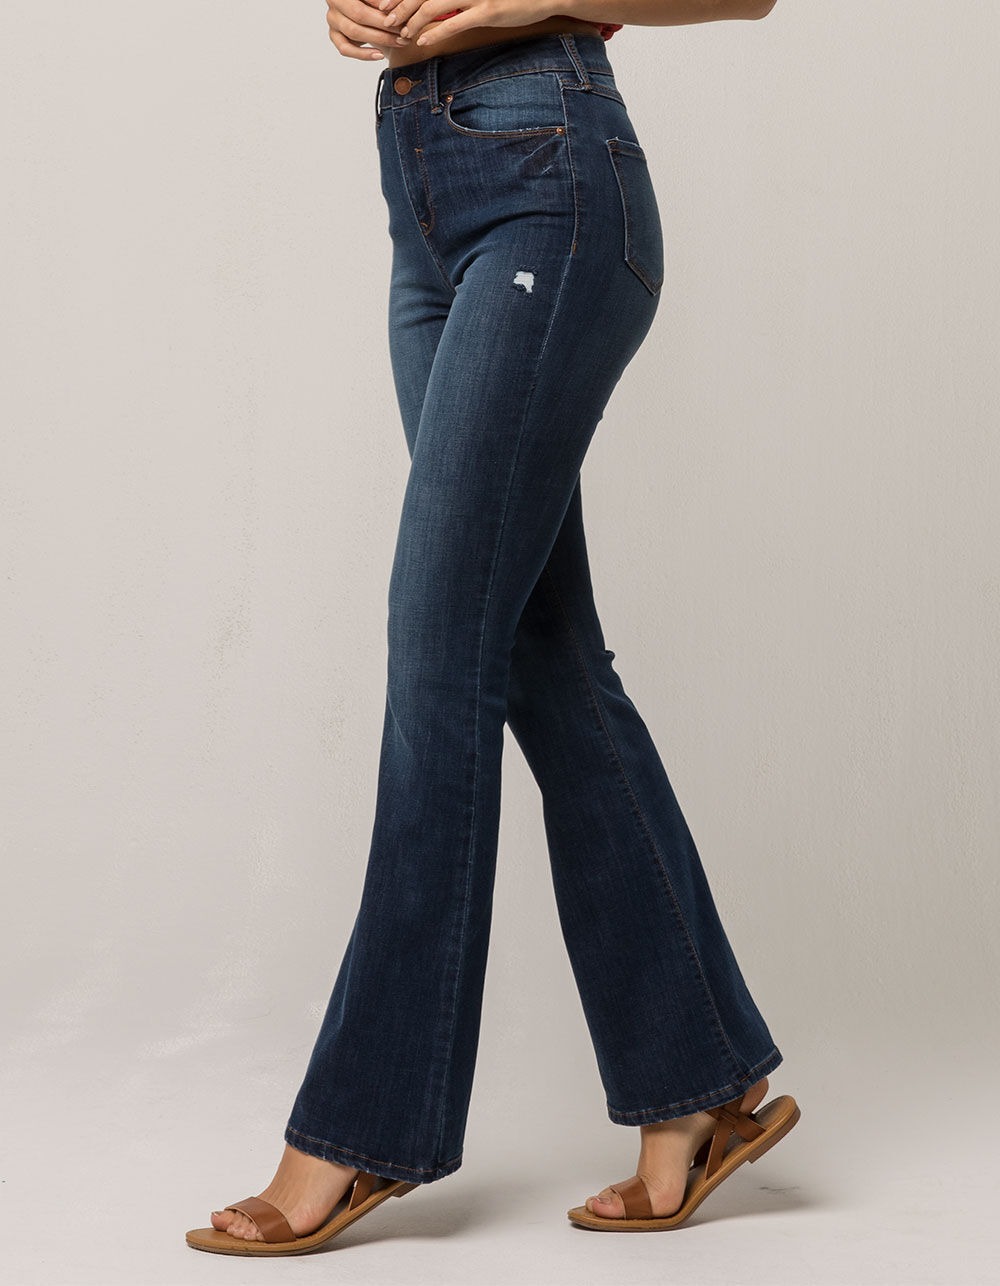 IVY & MAIN High Waisted Flare Jeans